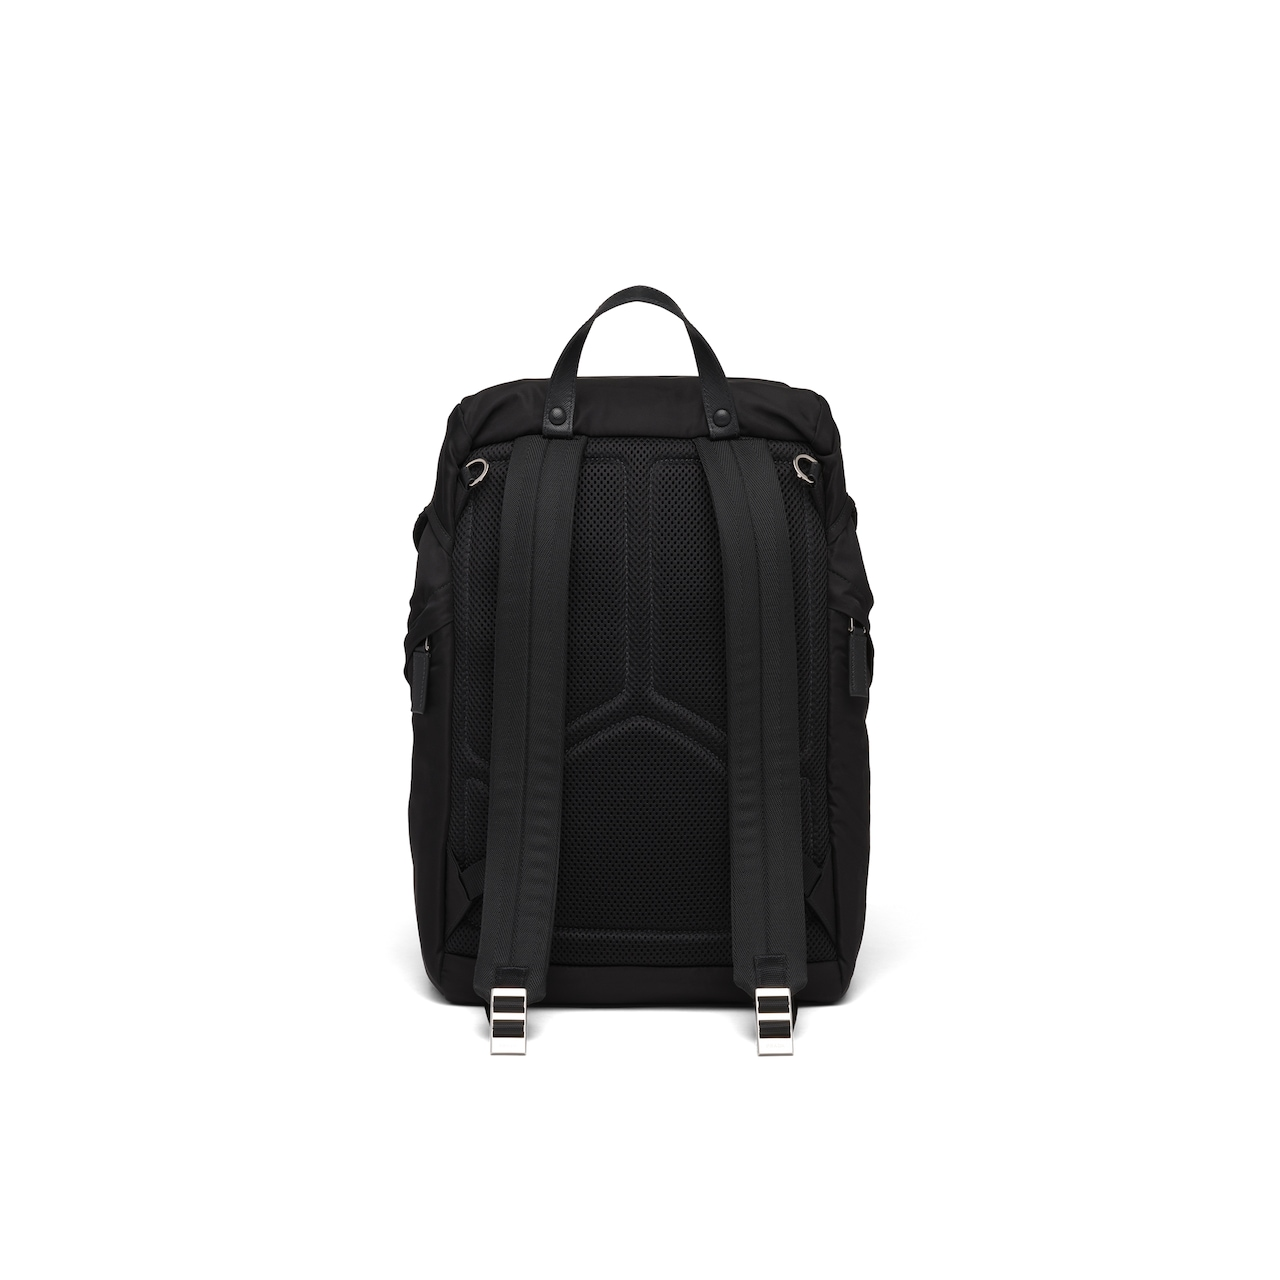 Prada Nylon and Saffiano leather backpack 4